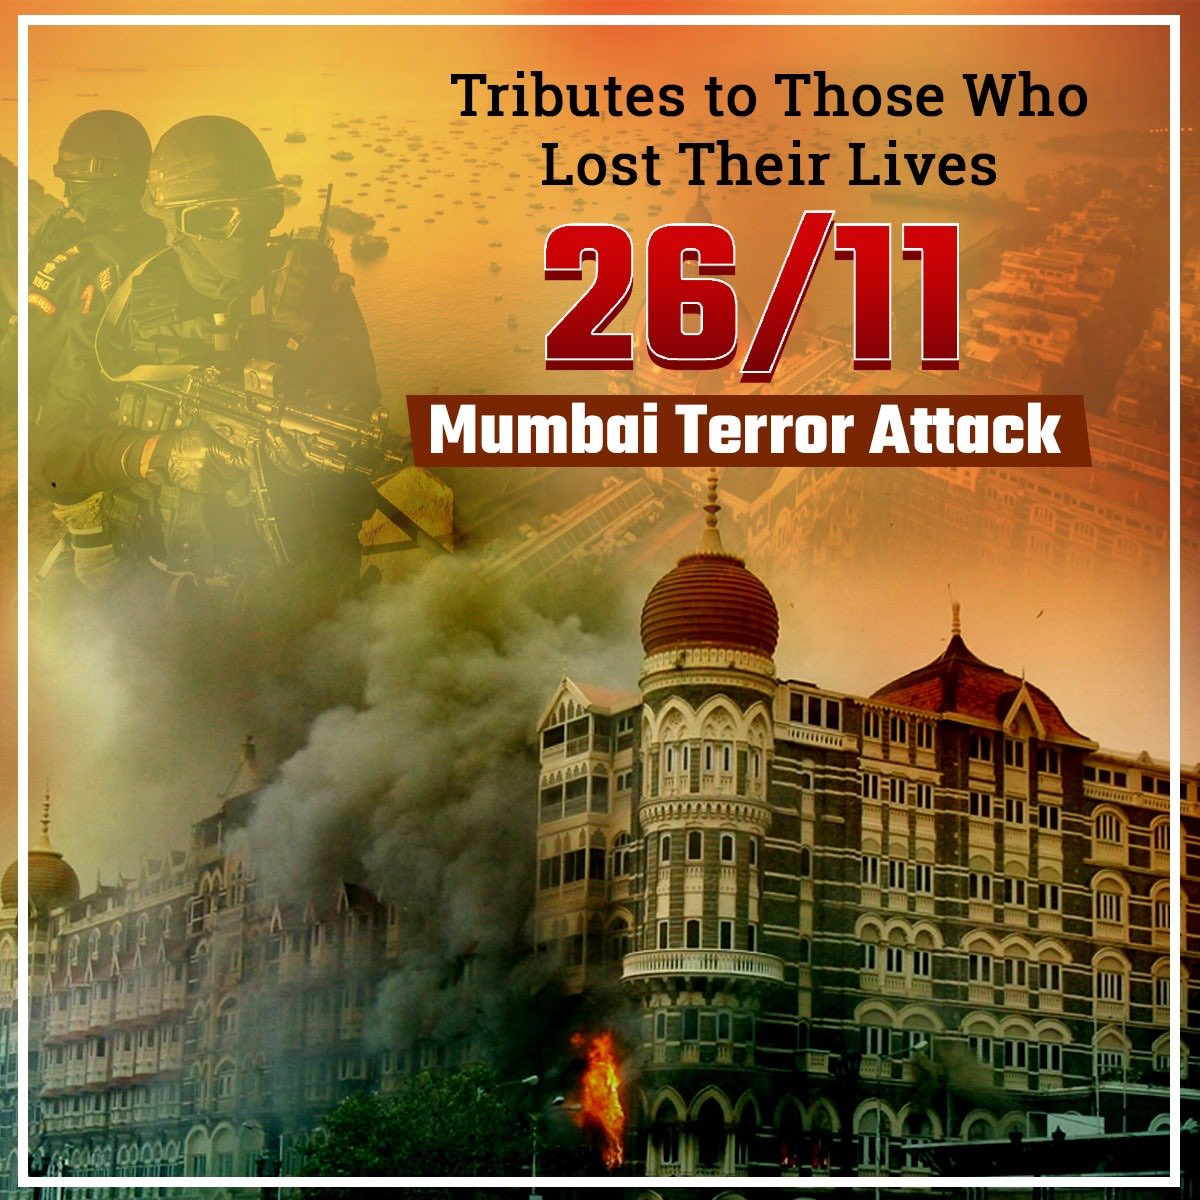 A symbol of the strength and resilience of this city that withstood the ghastly #MumbaiTerrorAttack! All thanks to our police force, the army & the people! #26/11